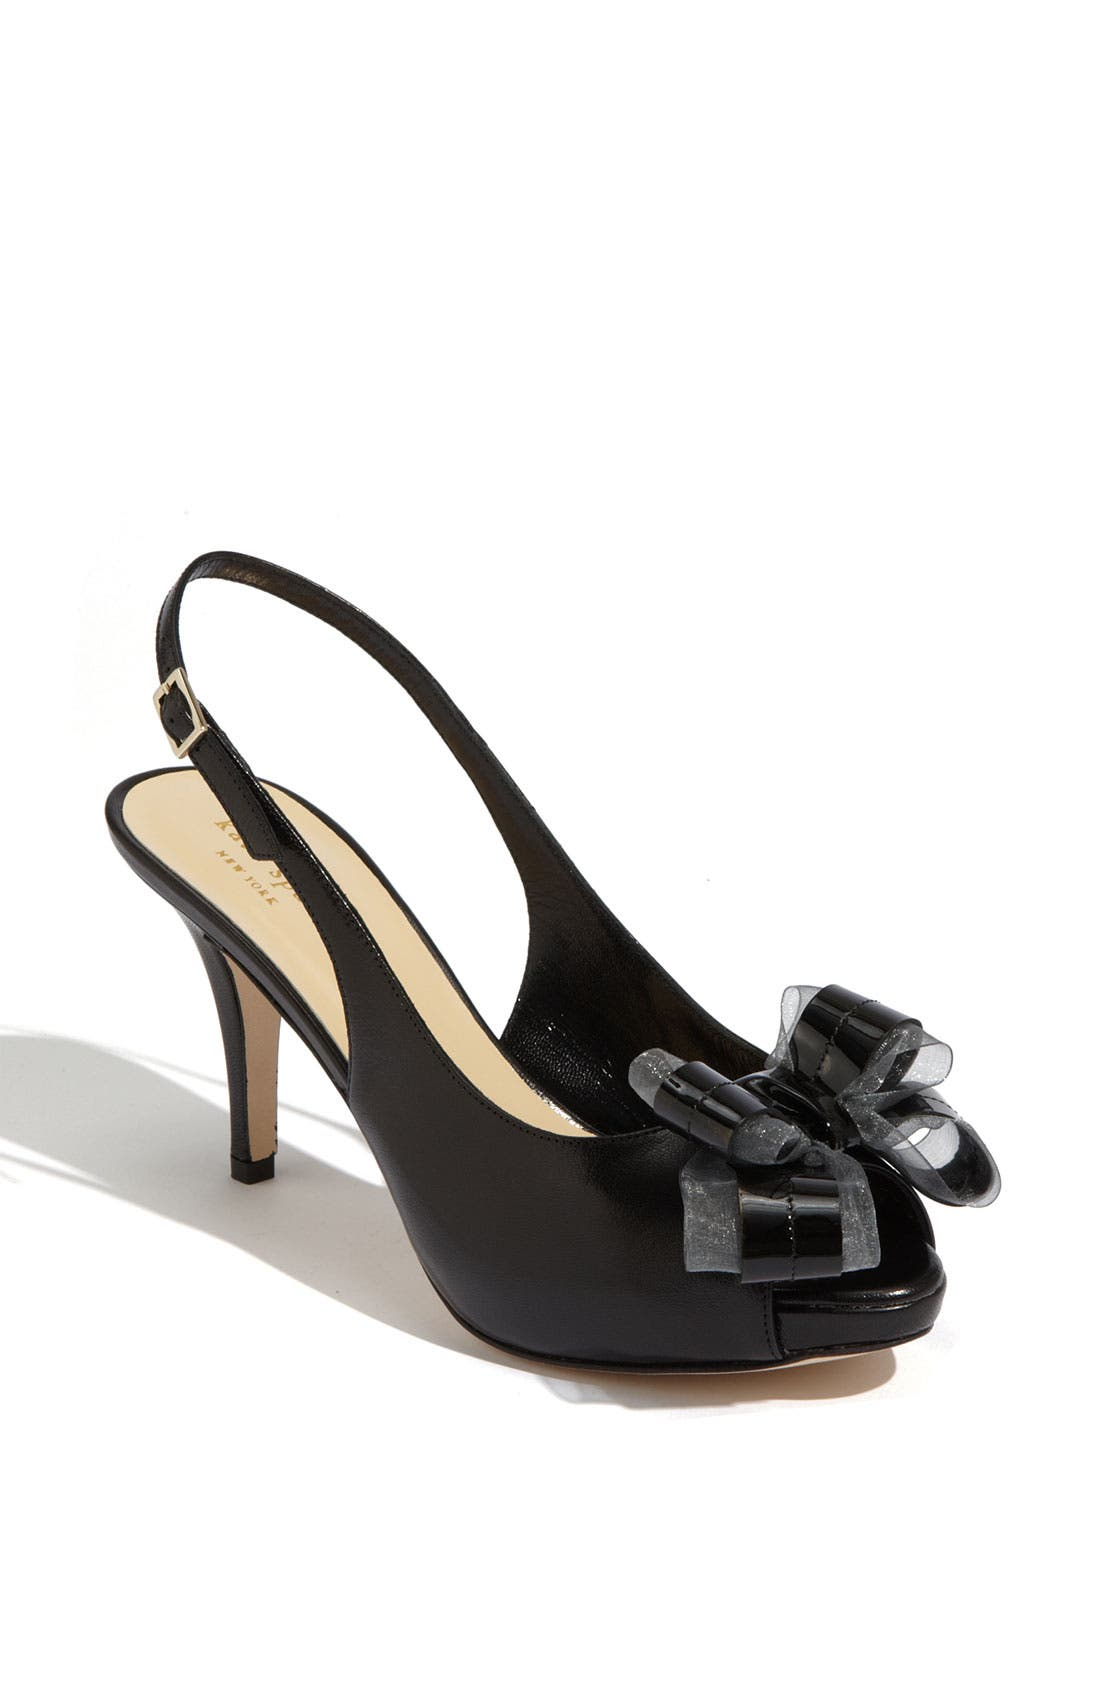 Alternate Image 1 Selected - kate spade new york 'billow' pump